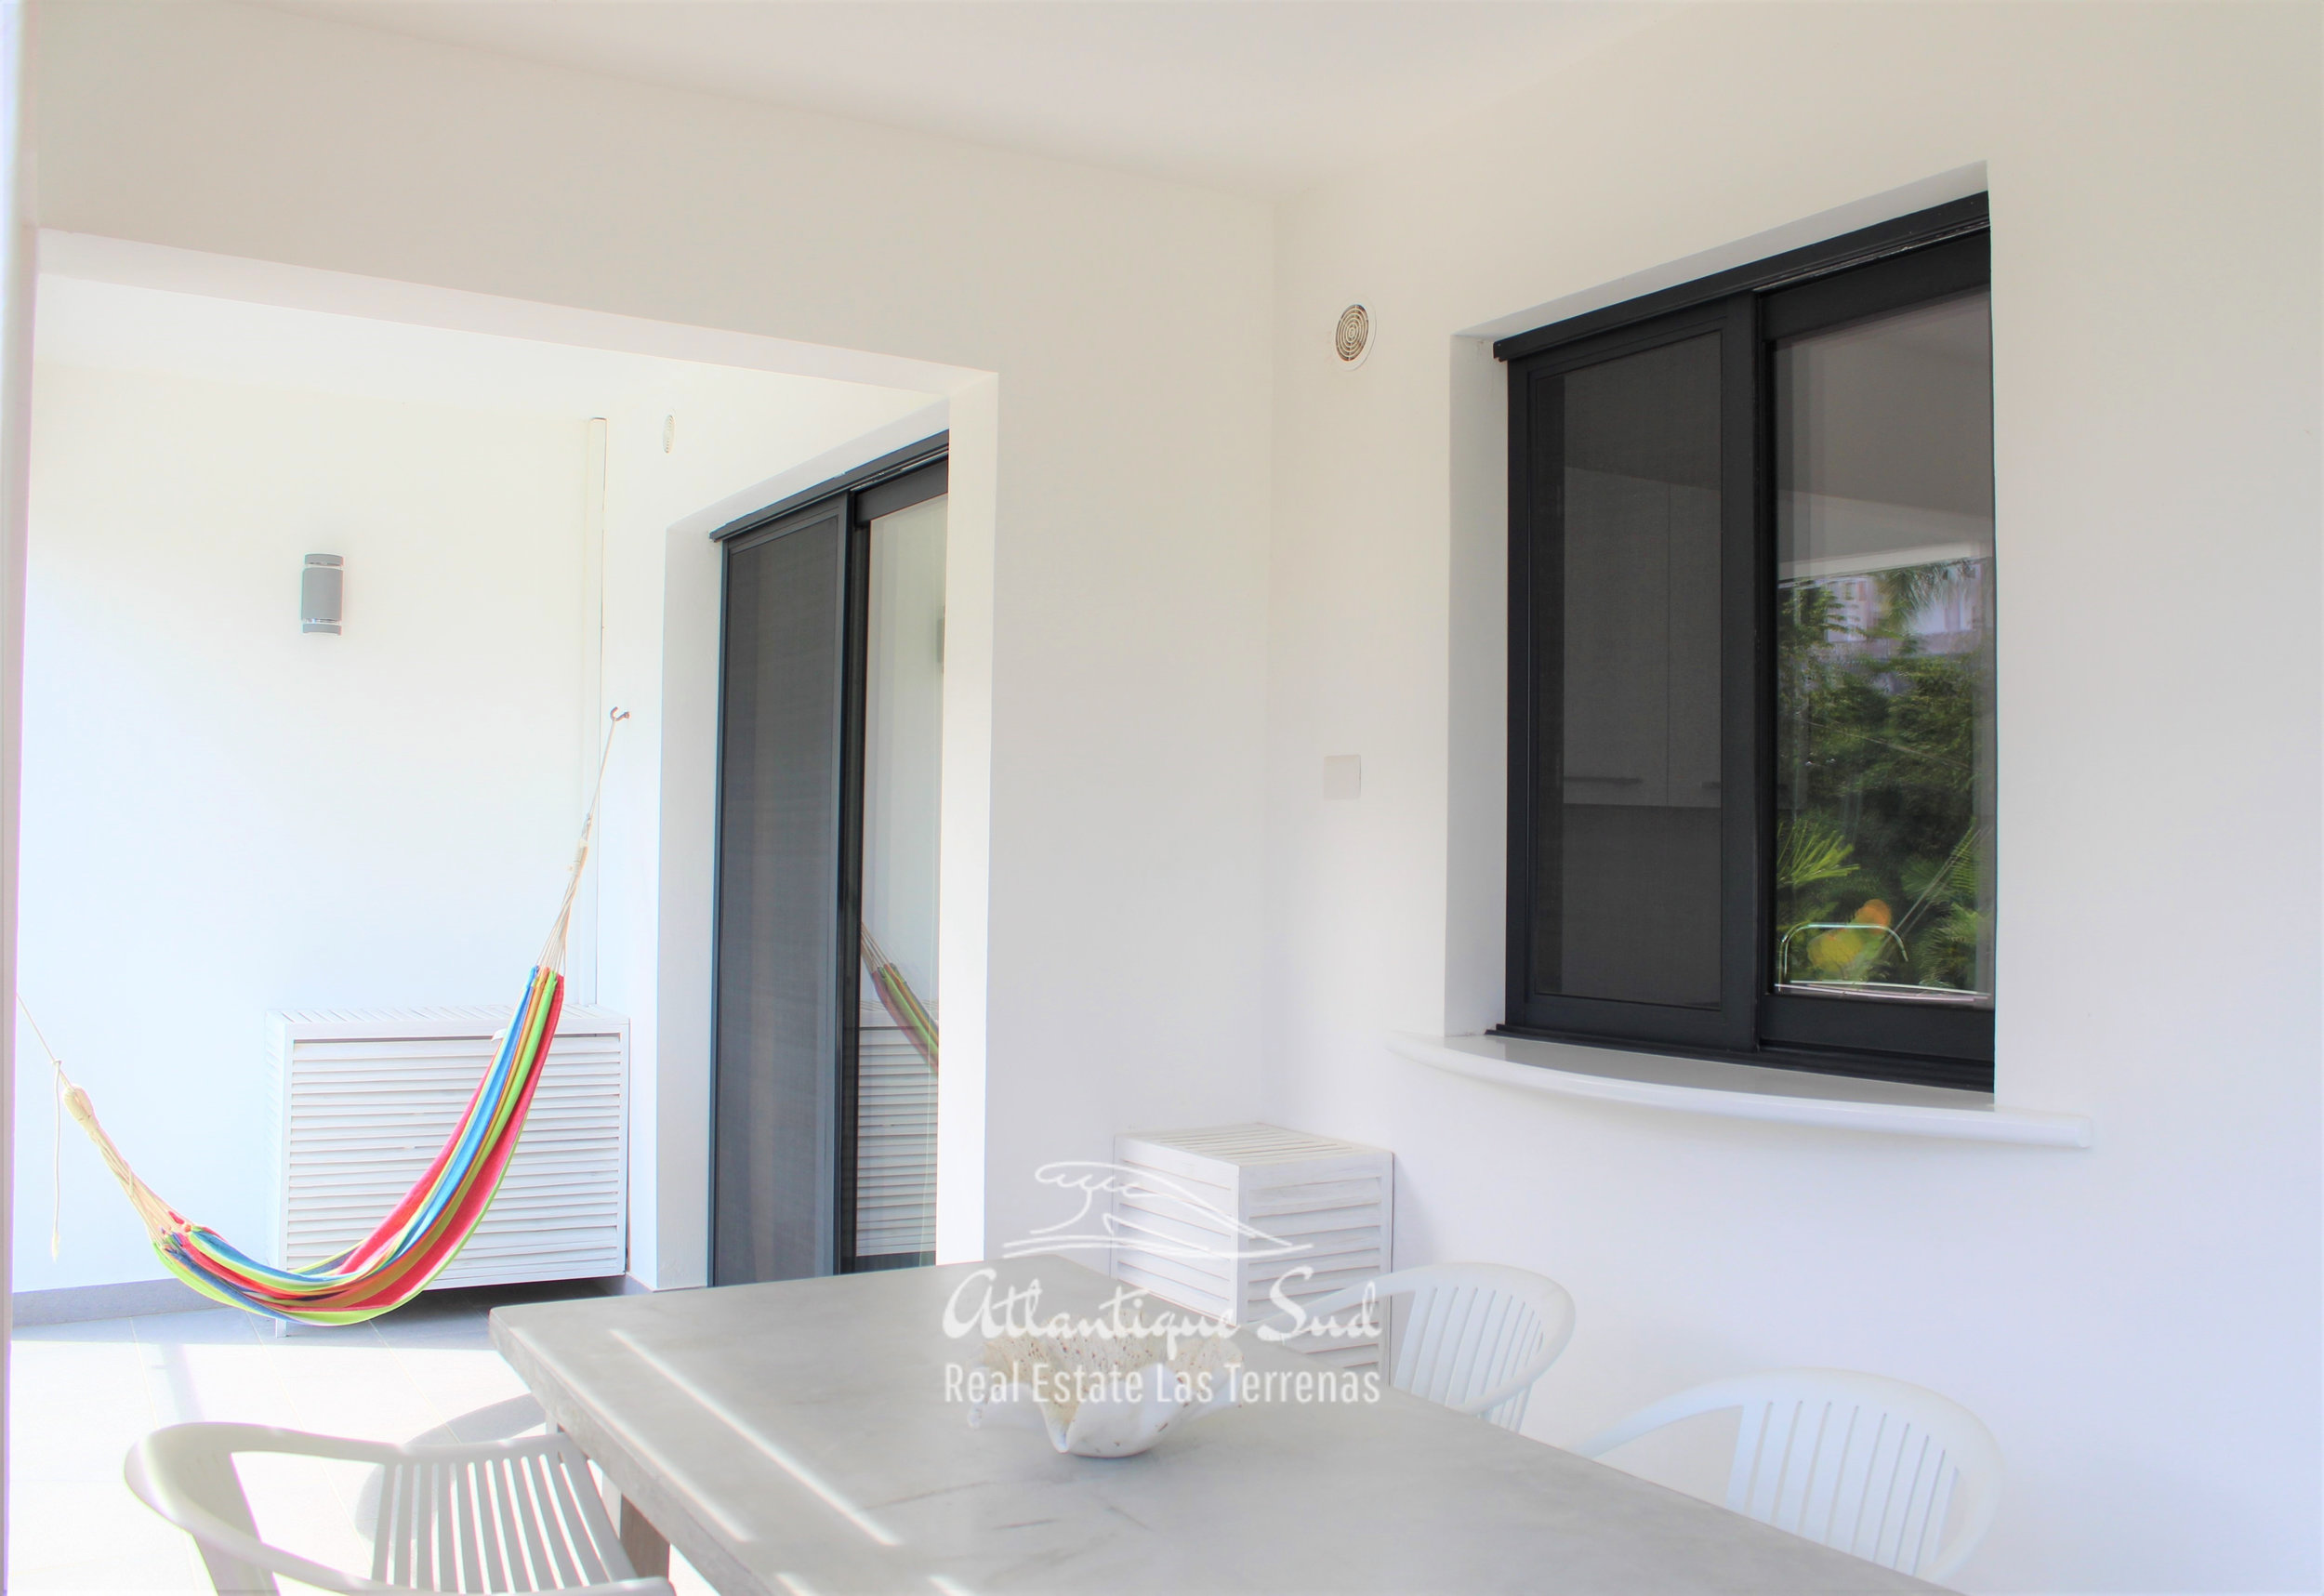 Cozy-1-bedroom-apartment-in-gated-community-close-to-the-center-of-lasterrenas9.jpg